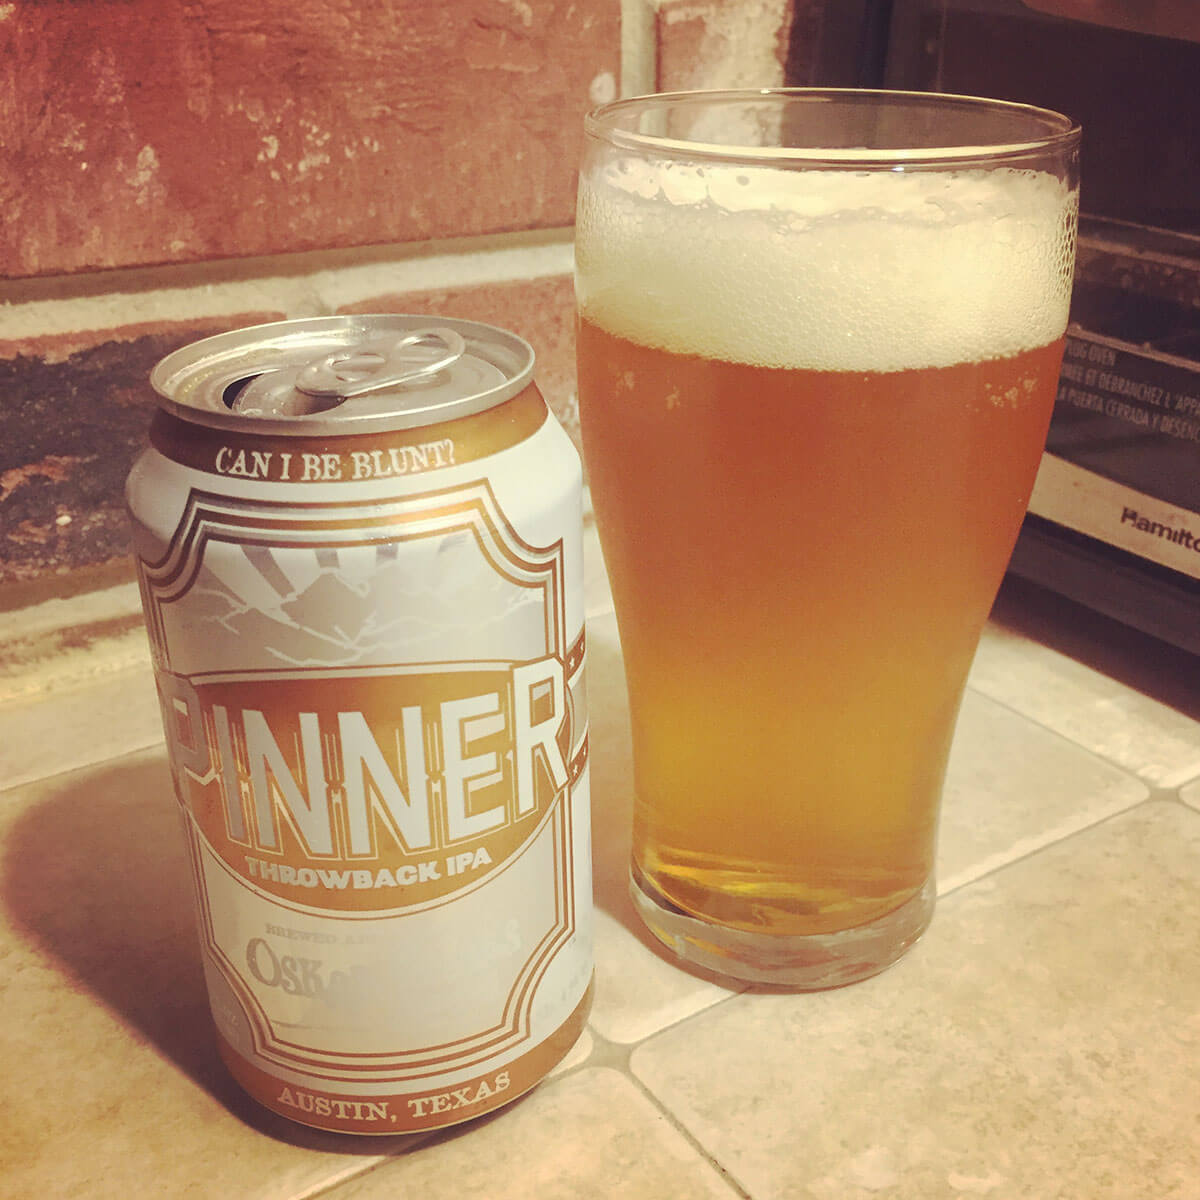 Pinner, a Session IPA by Oskar Blues Brewery